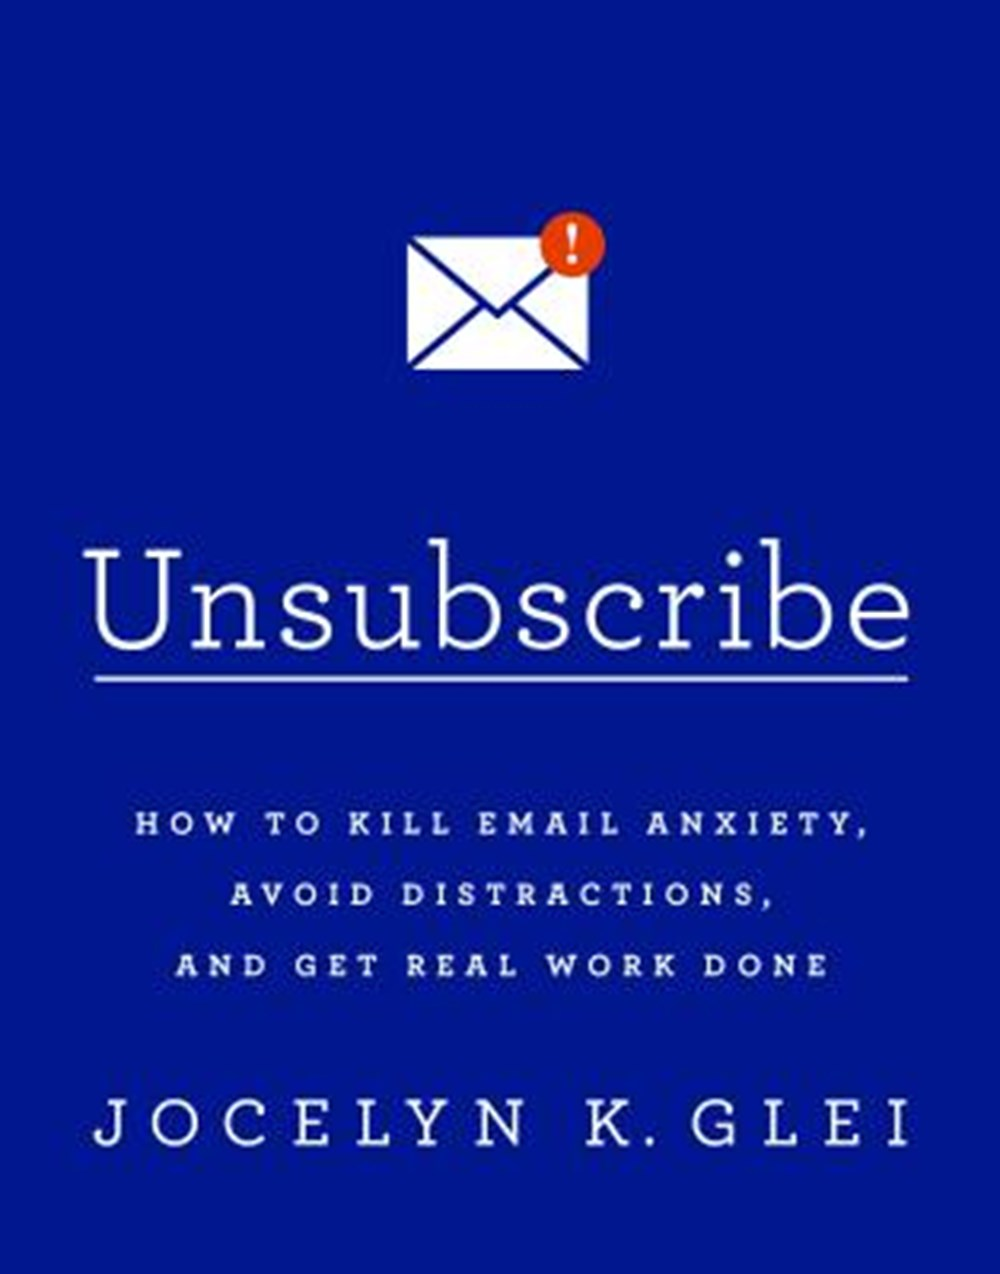 Unsubscribe How to Kill Email Anxiety, Avoid Distractions, and Get Real Work Done